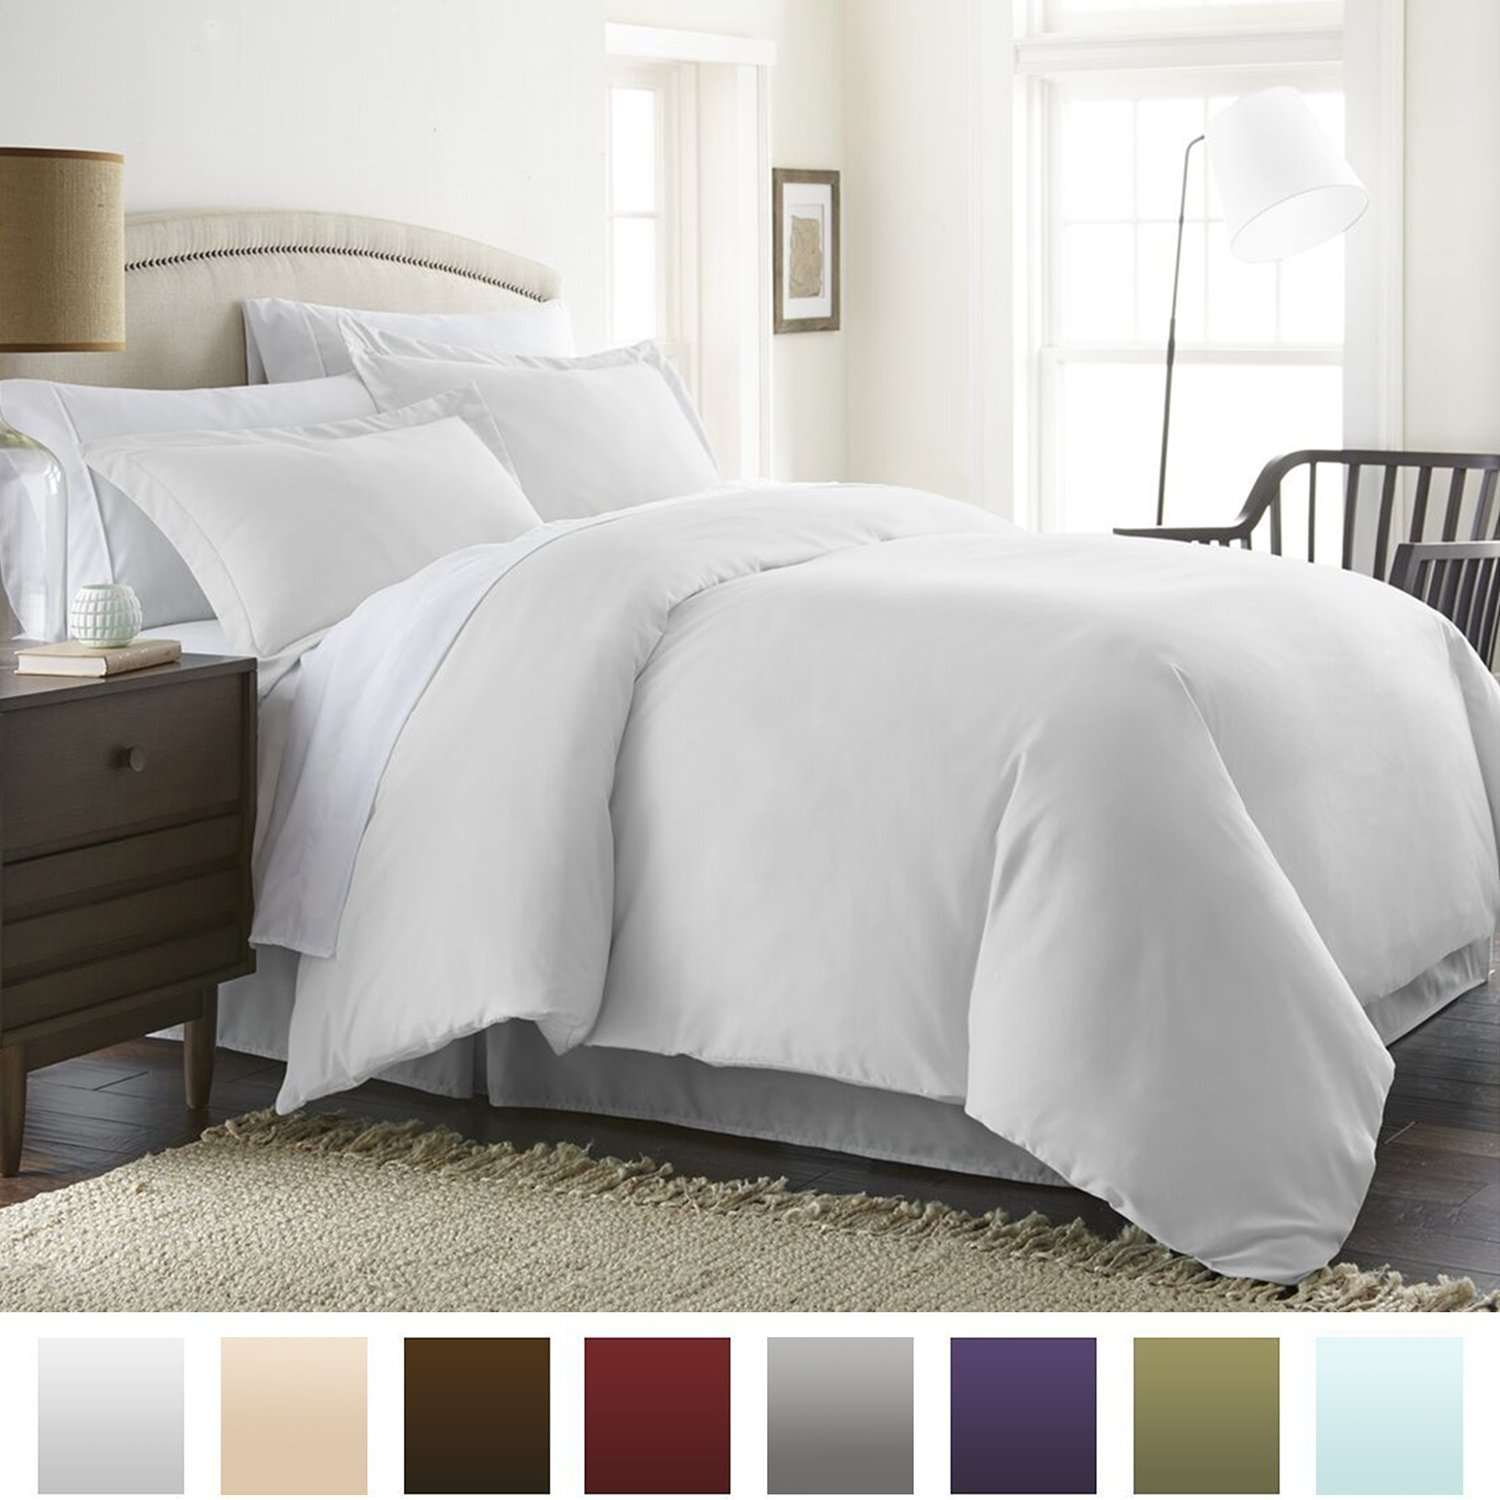 Beckham Hotel Collection Luxury Soft Brushed 1800 Series Microfiber Duvet Cover Set - Hypoallergenic - King/Cal King, White